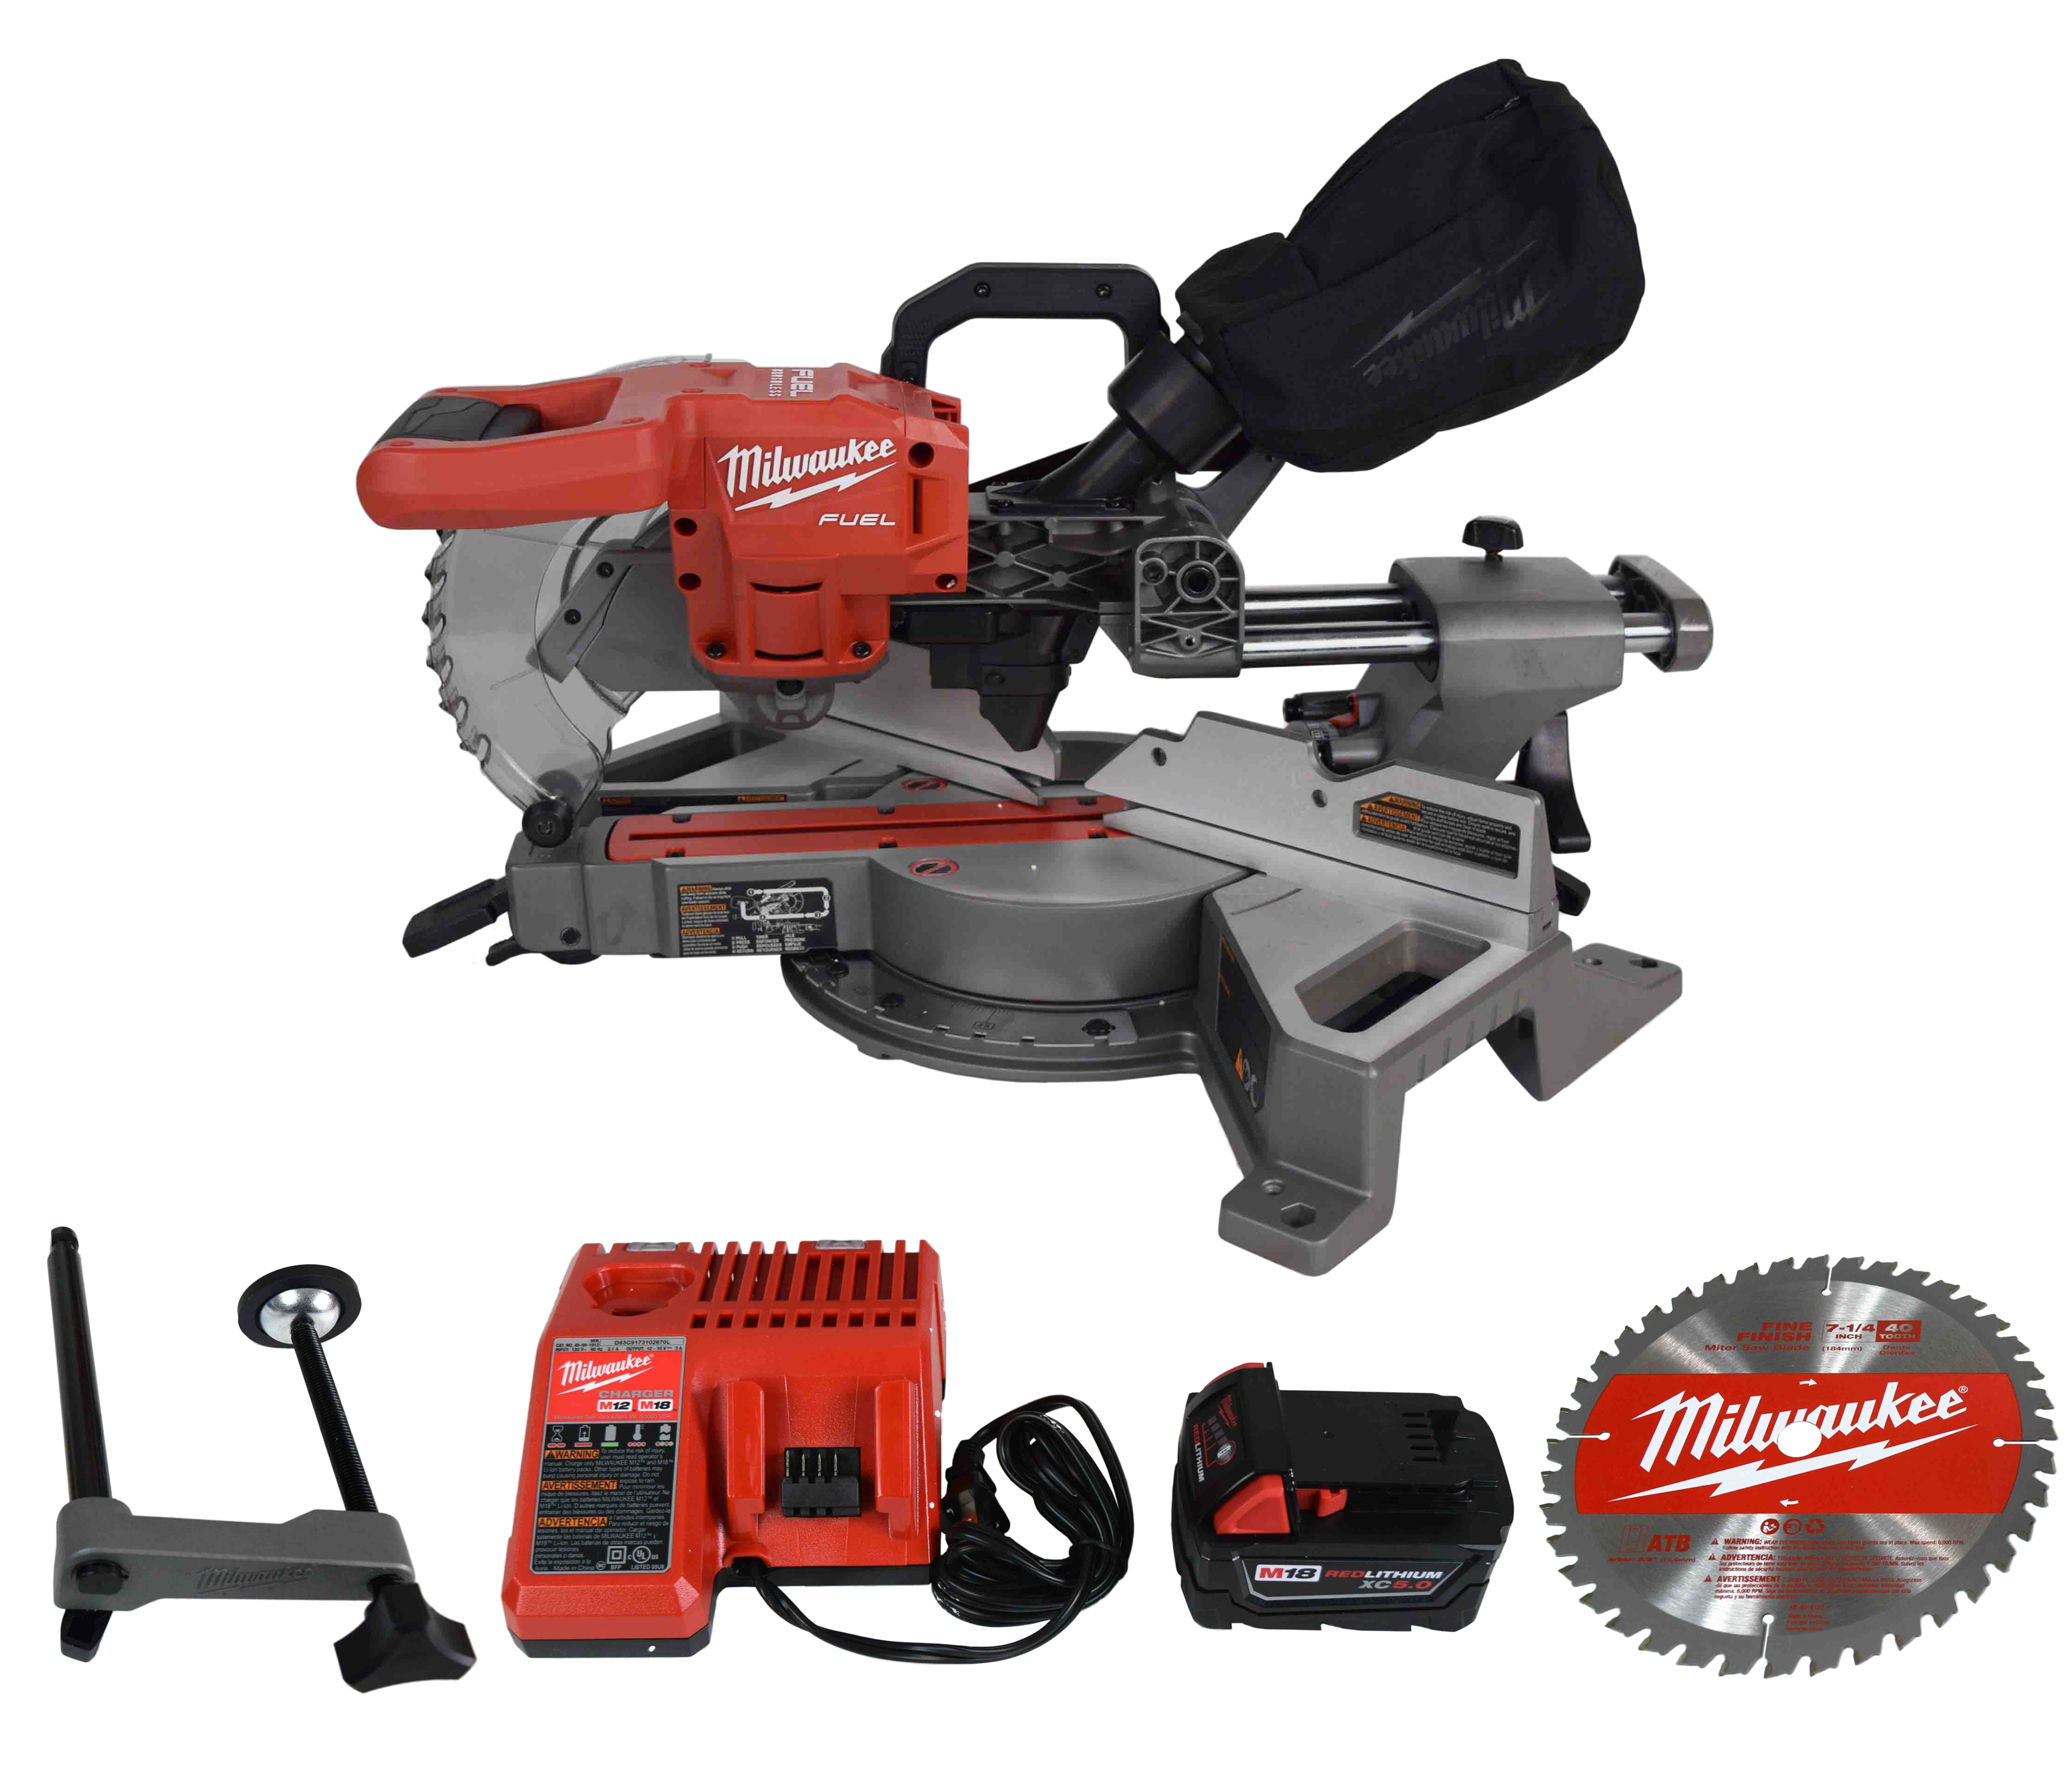 Milwaukee-2733-21-18-volt-7-1-4-inch-M18-Dual-Bevel-Sliding-Miter-Saw-Kit-image-1